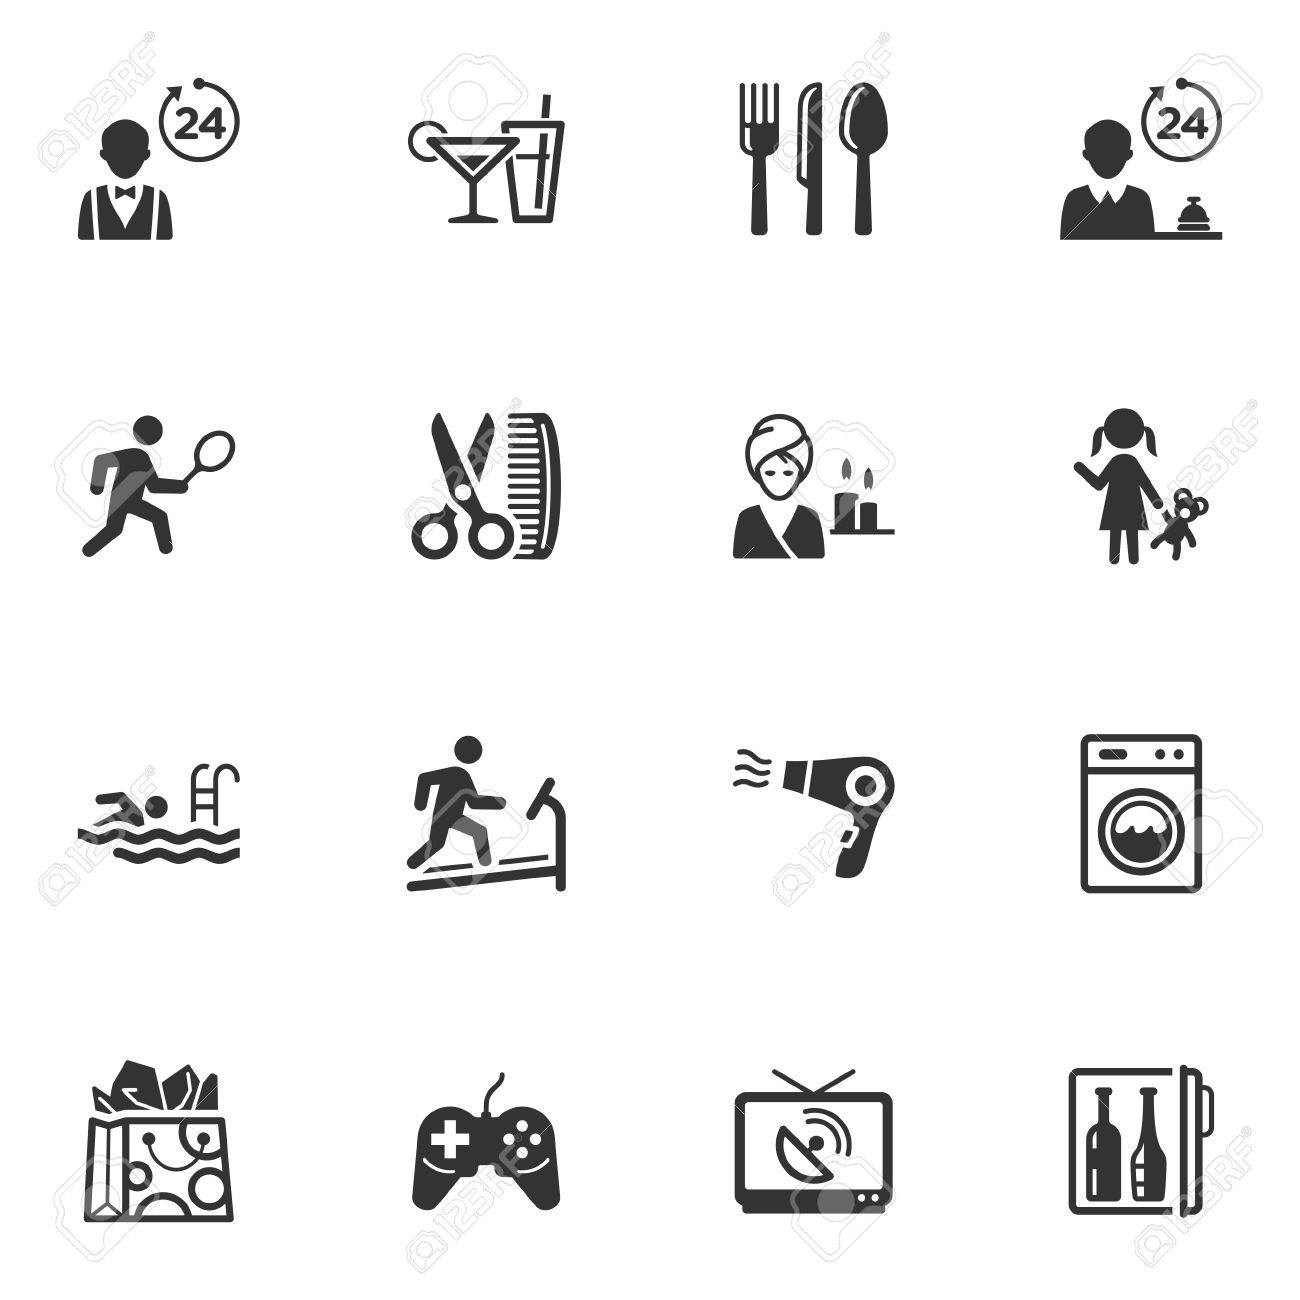 Hotel Services and Facilities Icons - Set 2 Stock Vector - 18577220